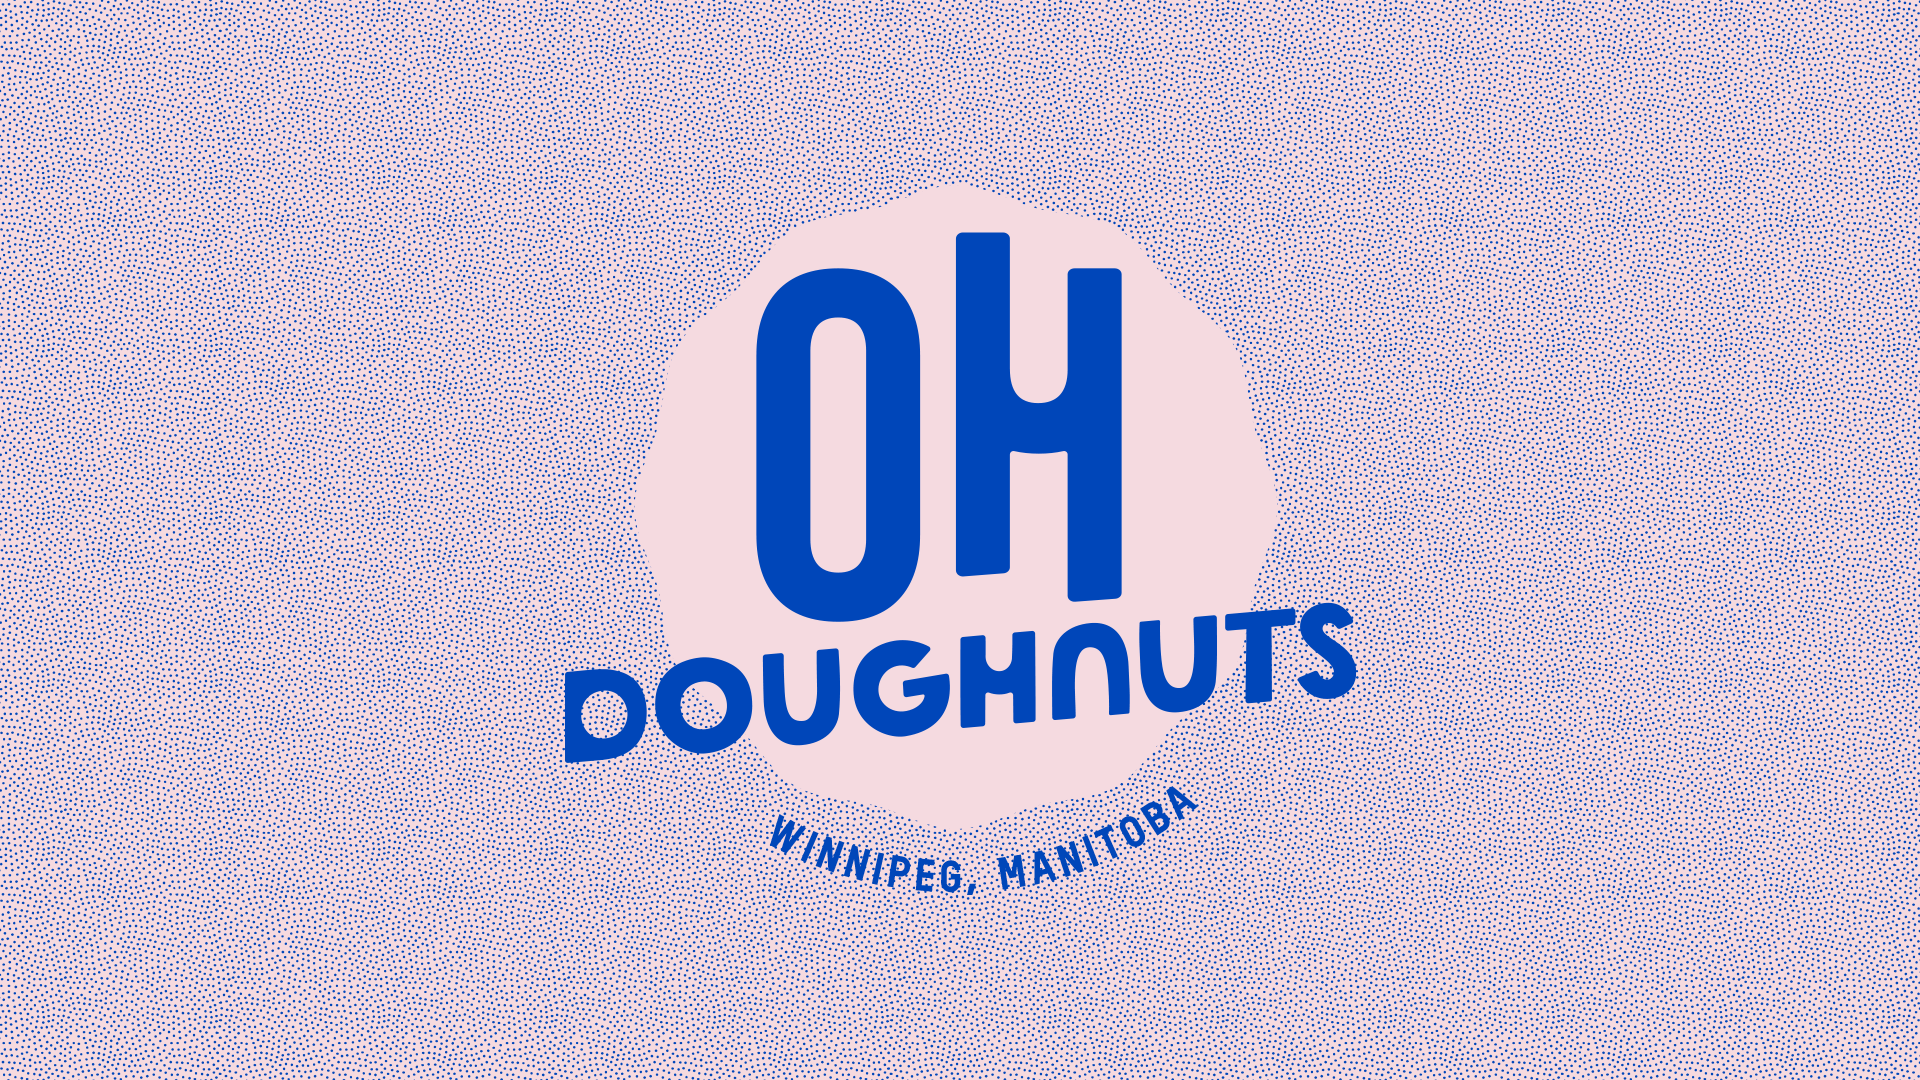 """A redesigned Oh Doughnuts logo with """"Winnipeg, Manitoba"""" in a circular path around the edge of the logo. The words Oh doughnuts are placed on an icing-like background with the word""""Oh"""" emphasized and the type written in a hand rendered circle-based type."""